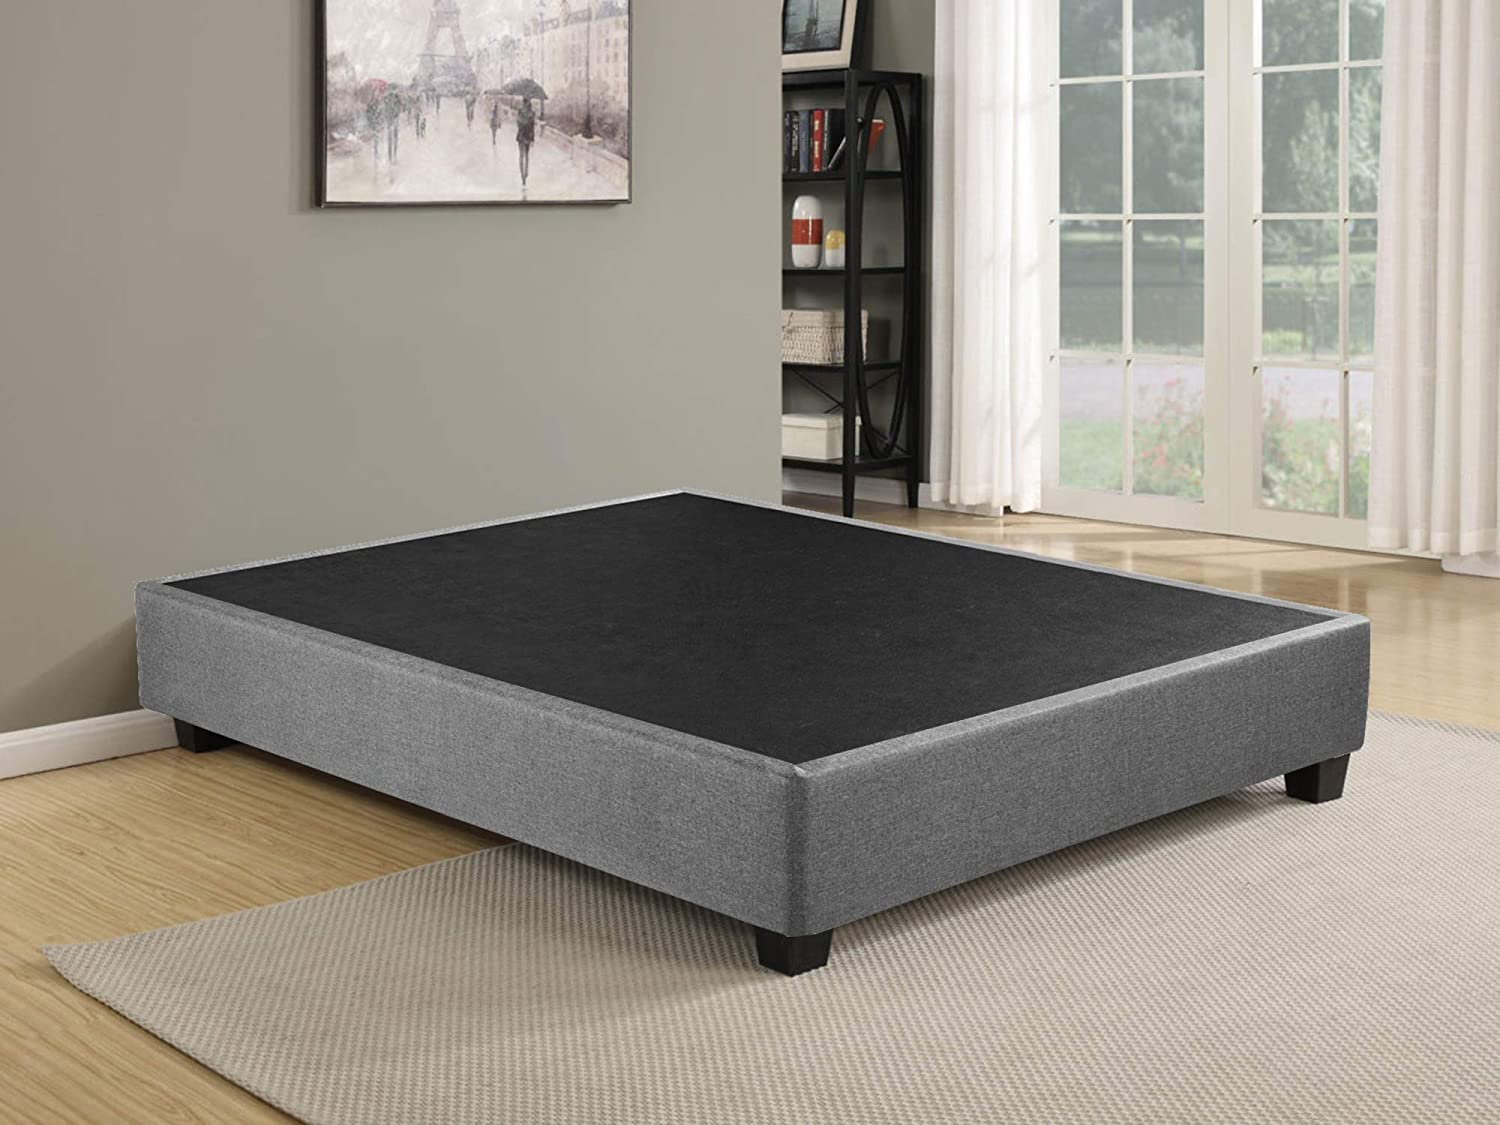 Spring Sleep Platform Bed for Mattress, Queen, Eliminates Need of Box Spring and Bed Frame 60EBNN-5/0